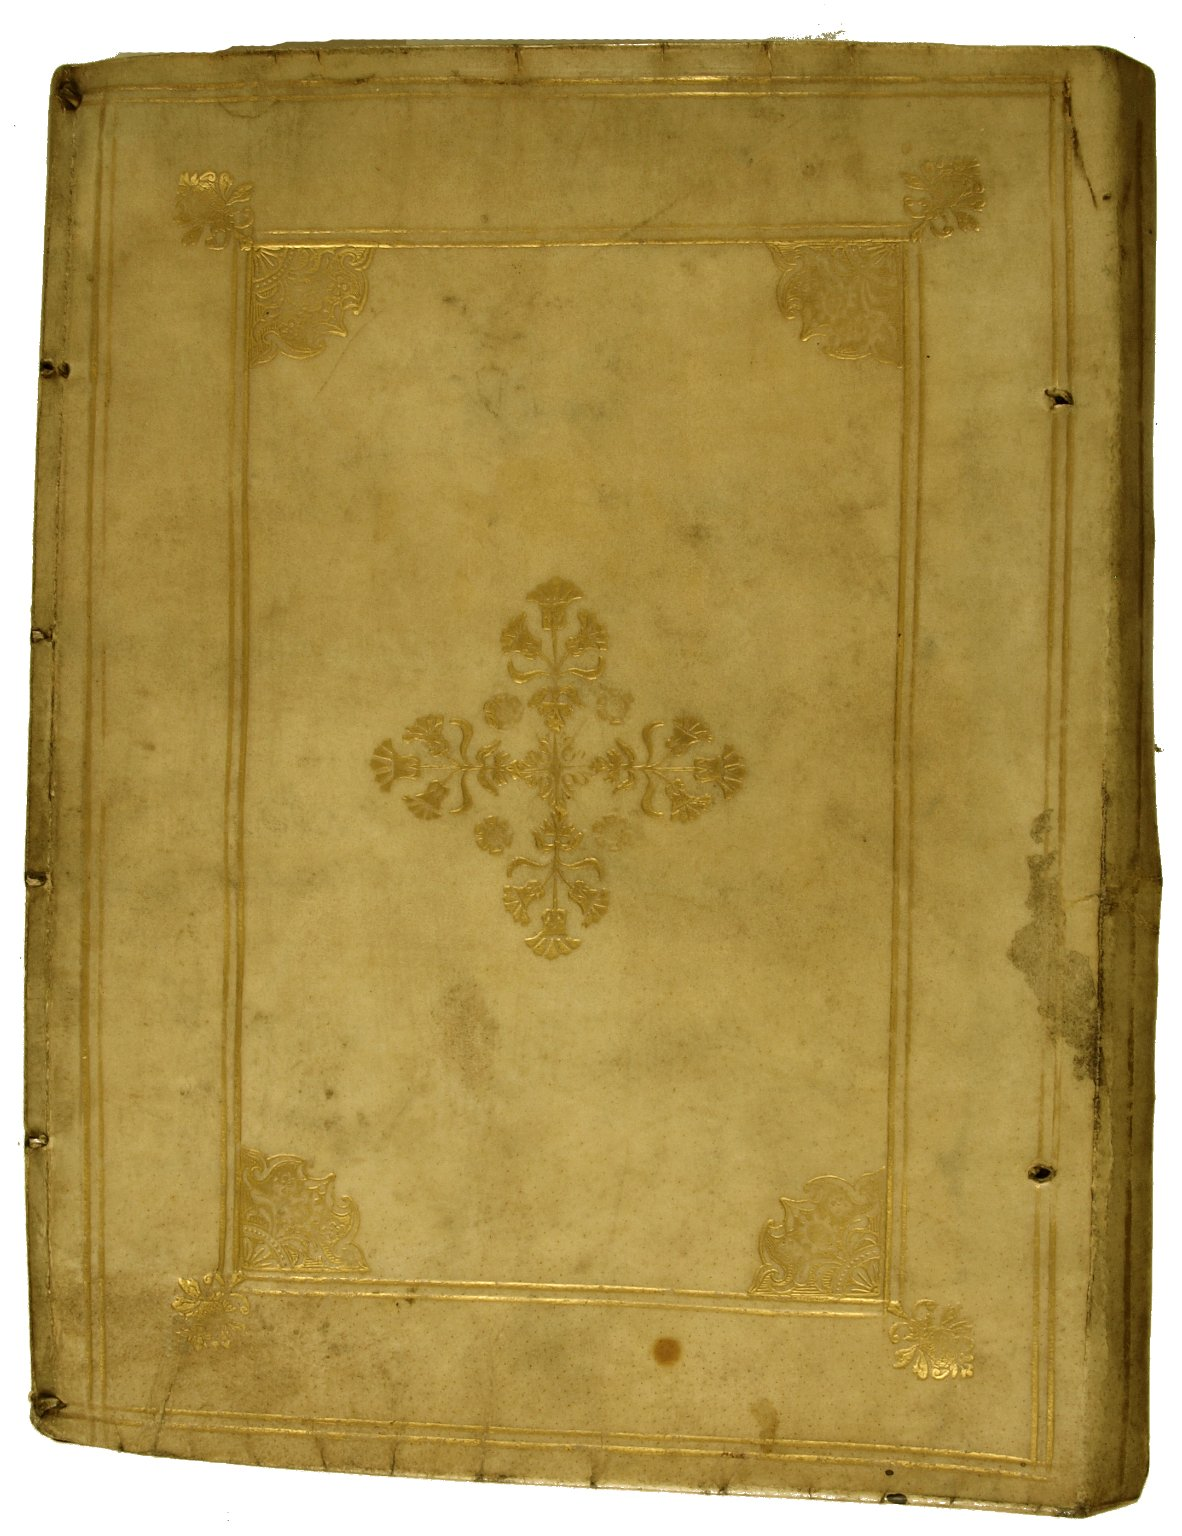 Front cover, STC 4606 copy 3.